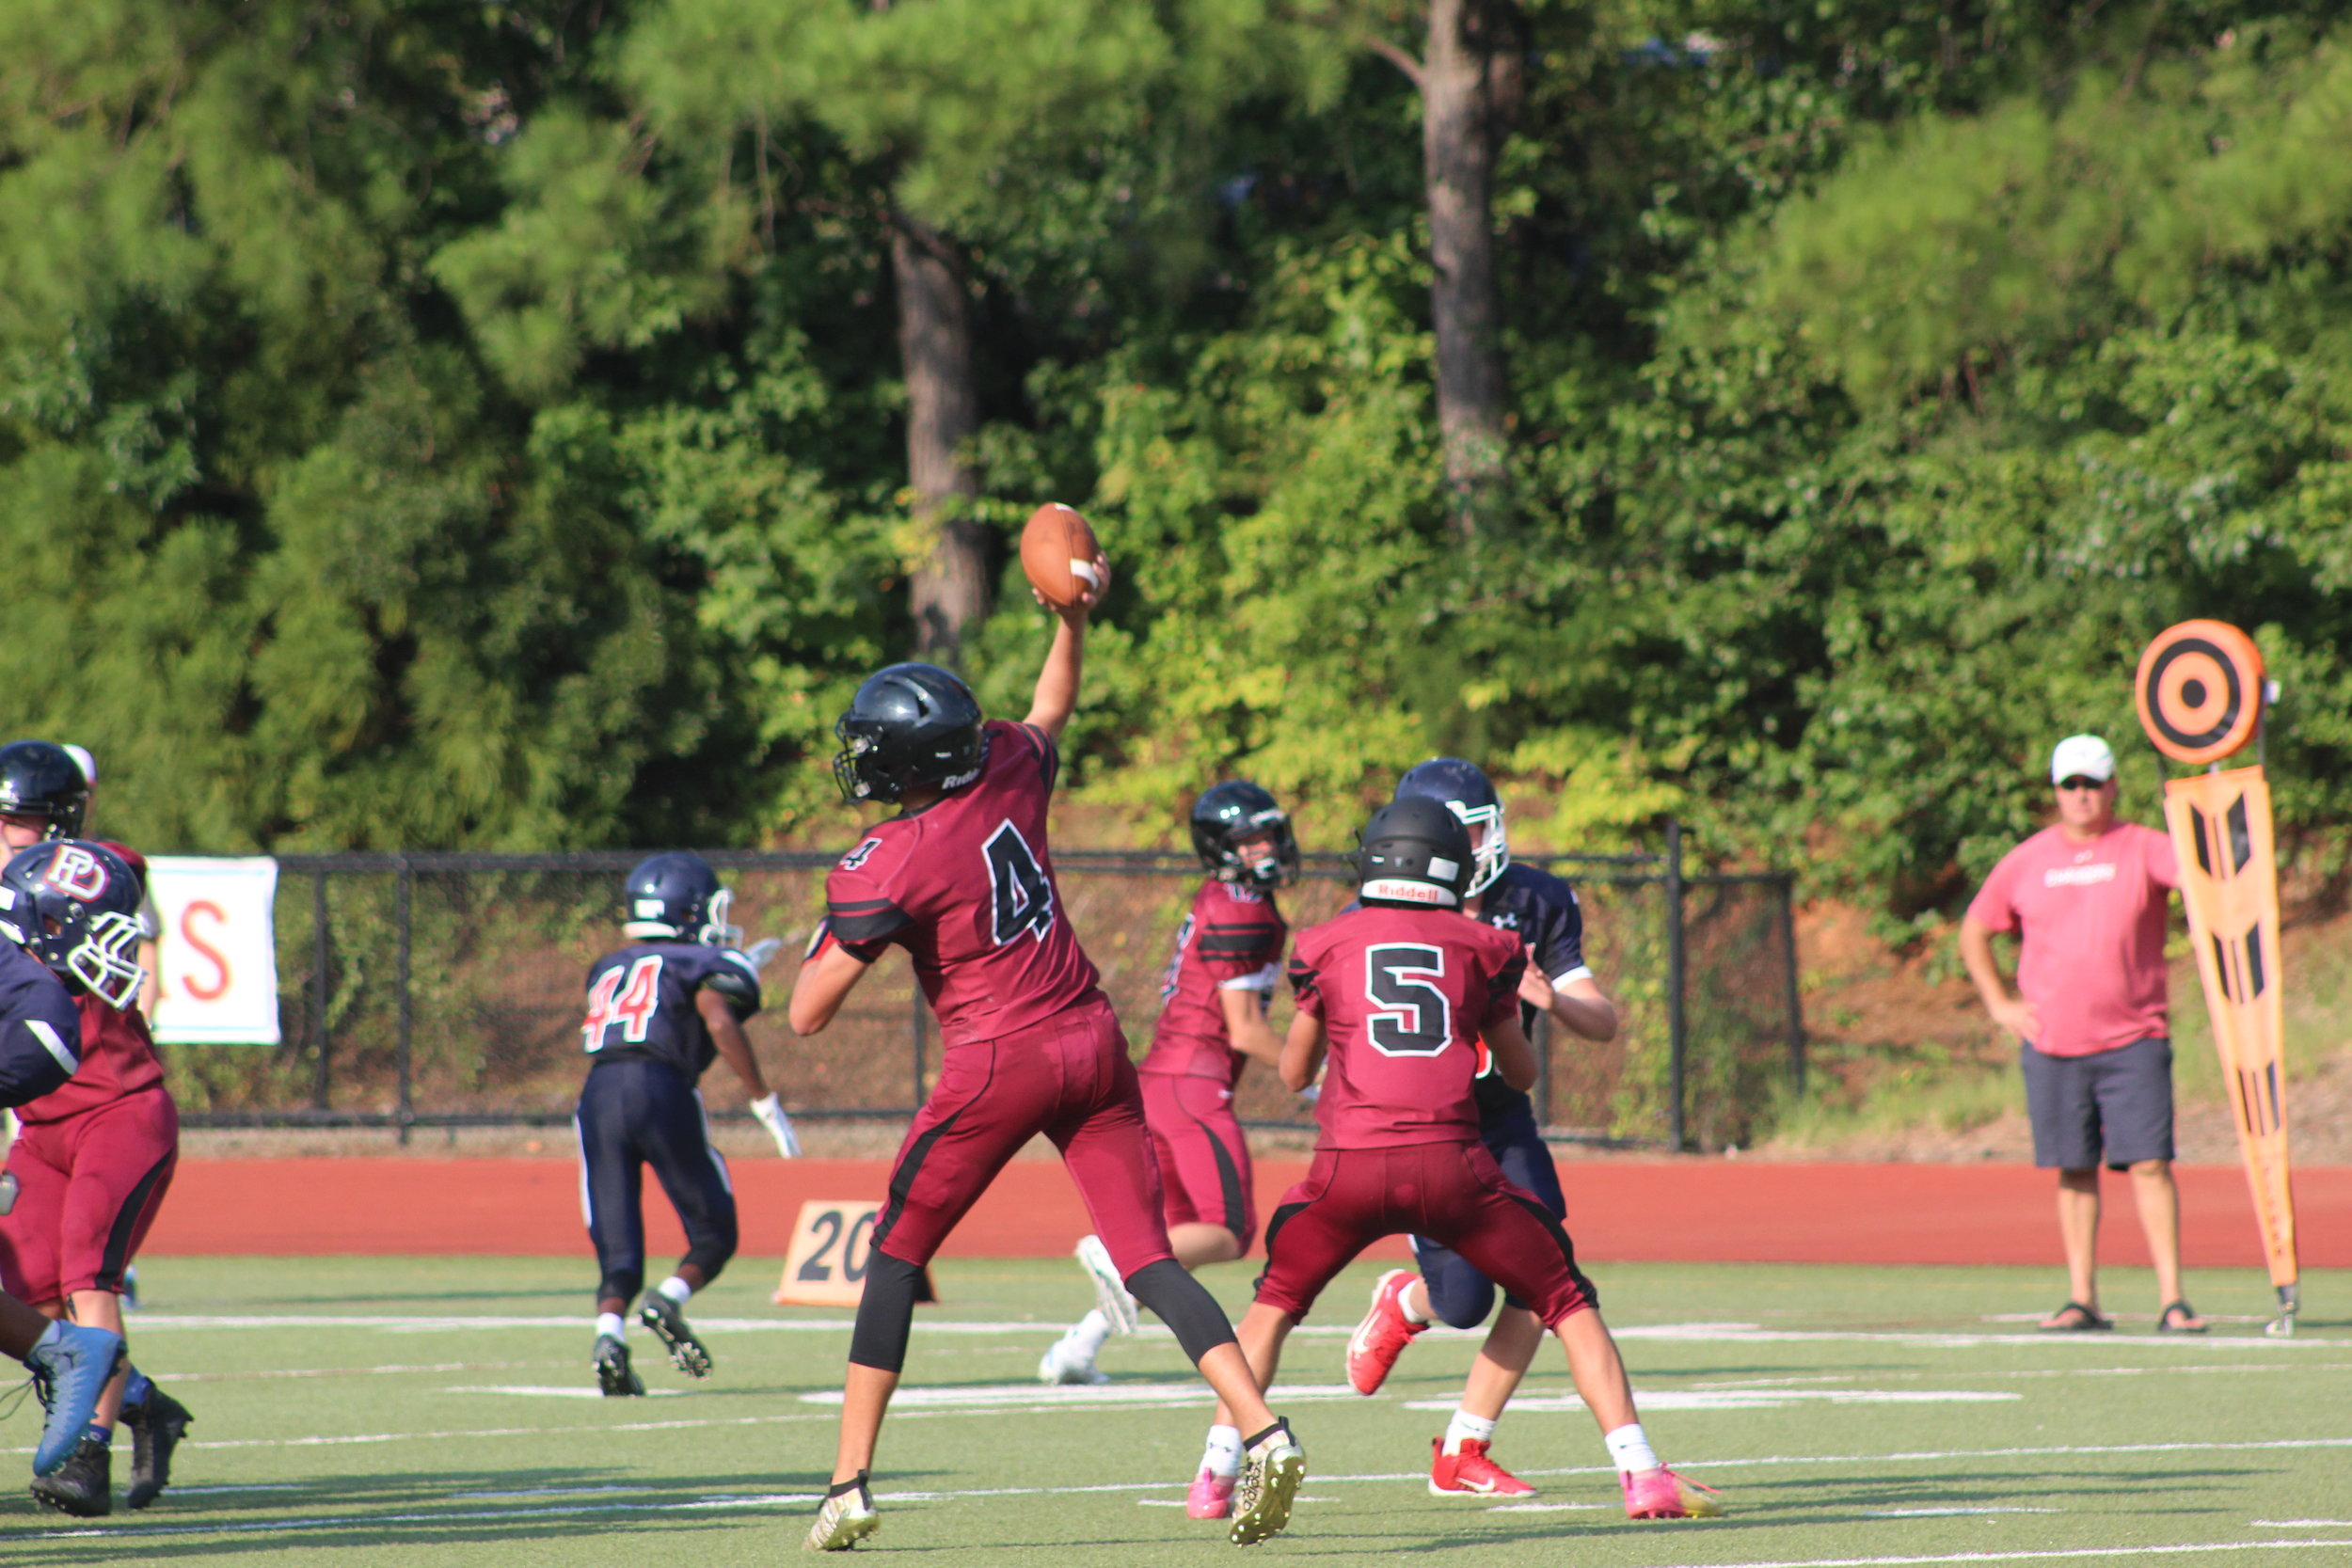 QB Tyler Green of Cannon School ranked #3 Pro Style in his class